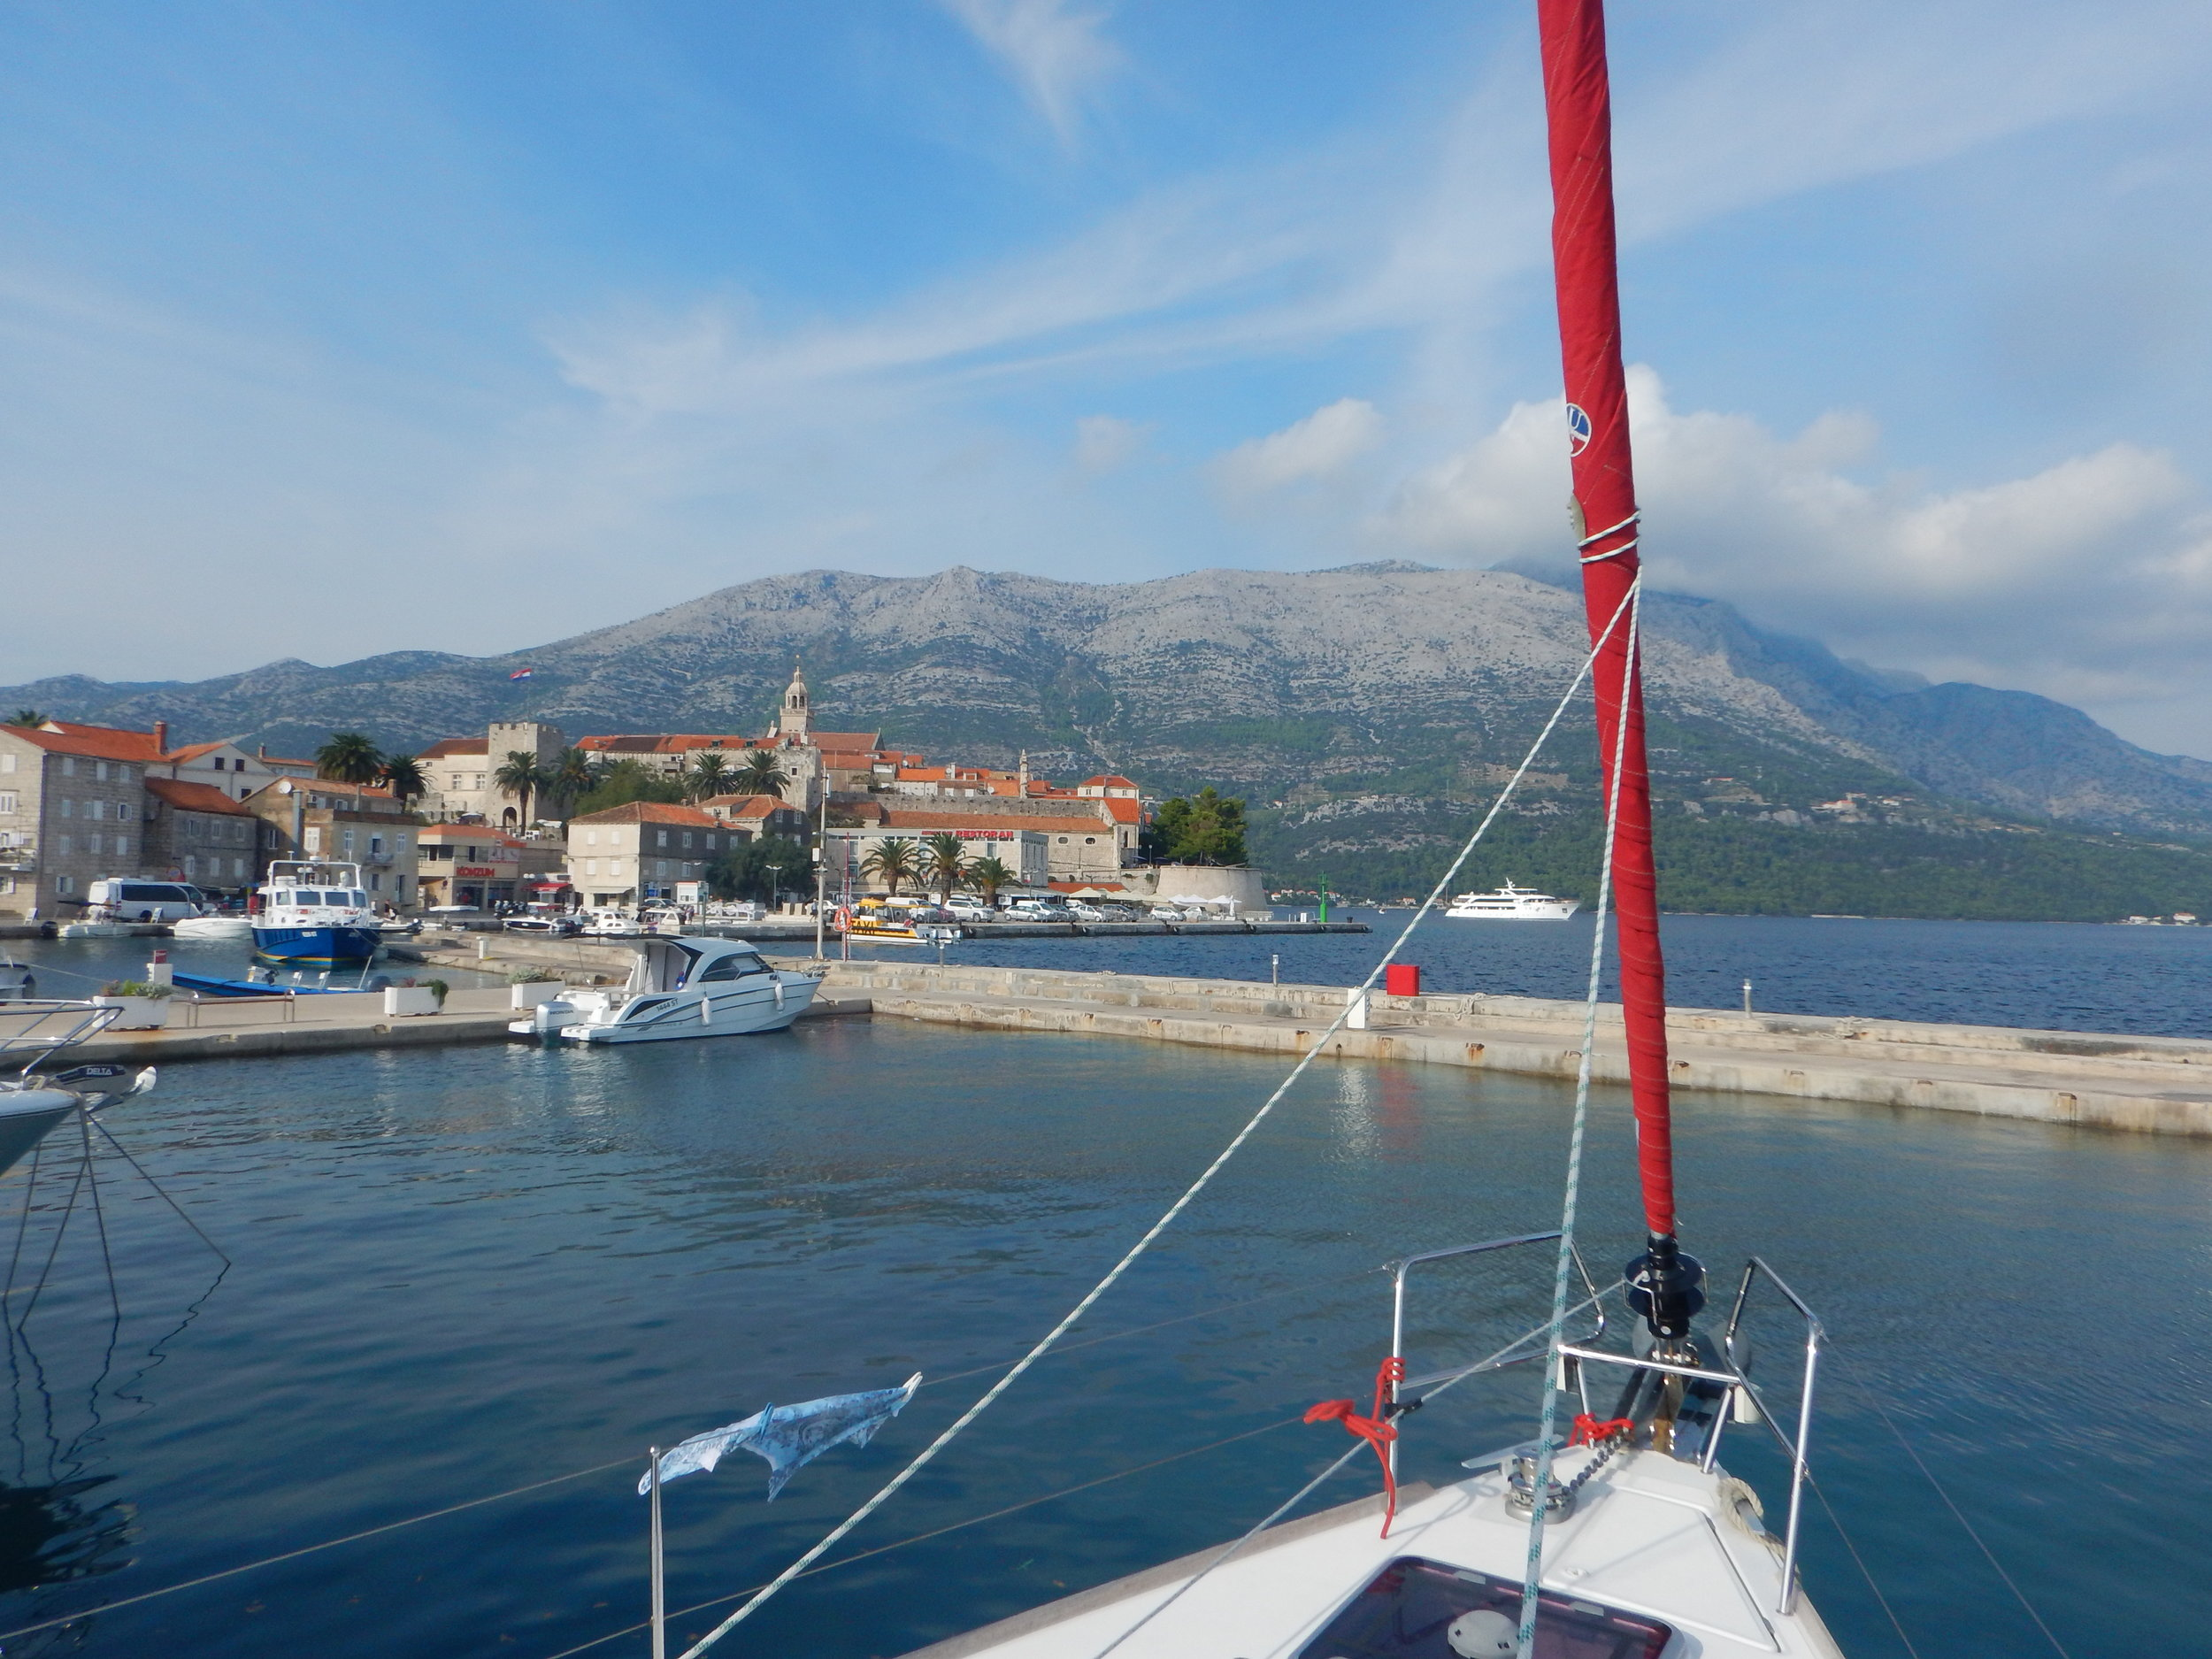 We docked at the ACI Marina in Korcula Town, on the island of Korcula.